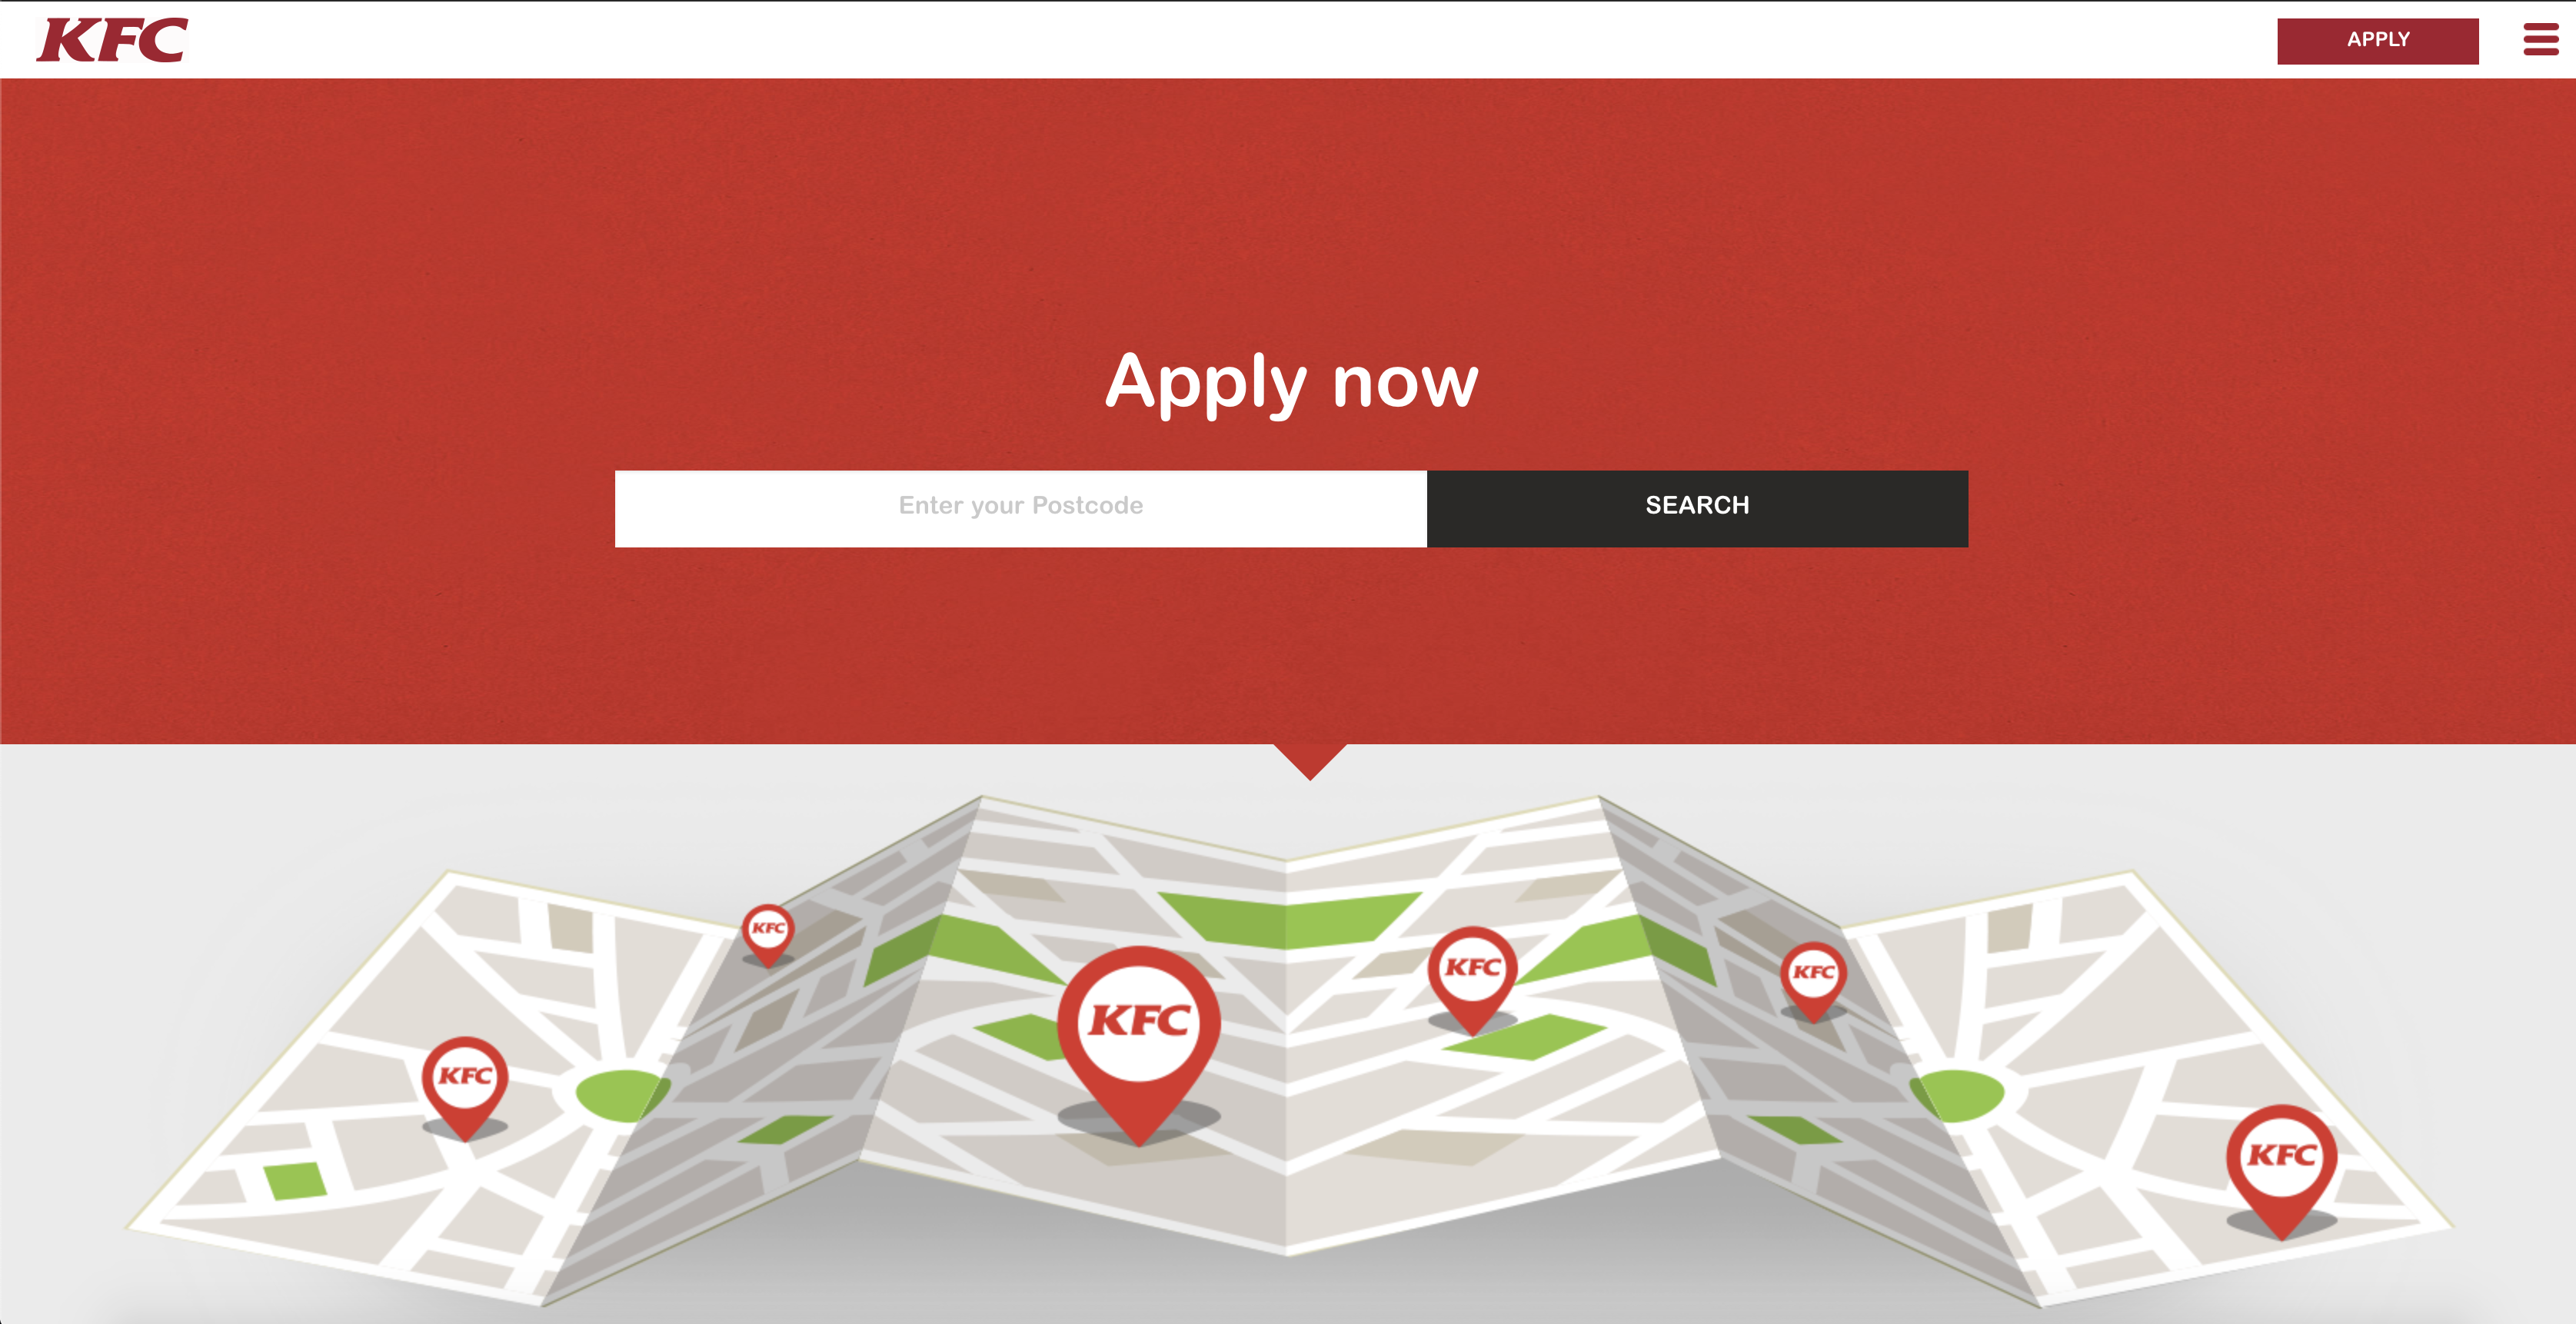 kfc australia job application step 4